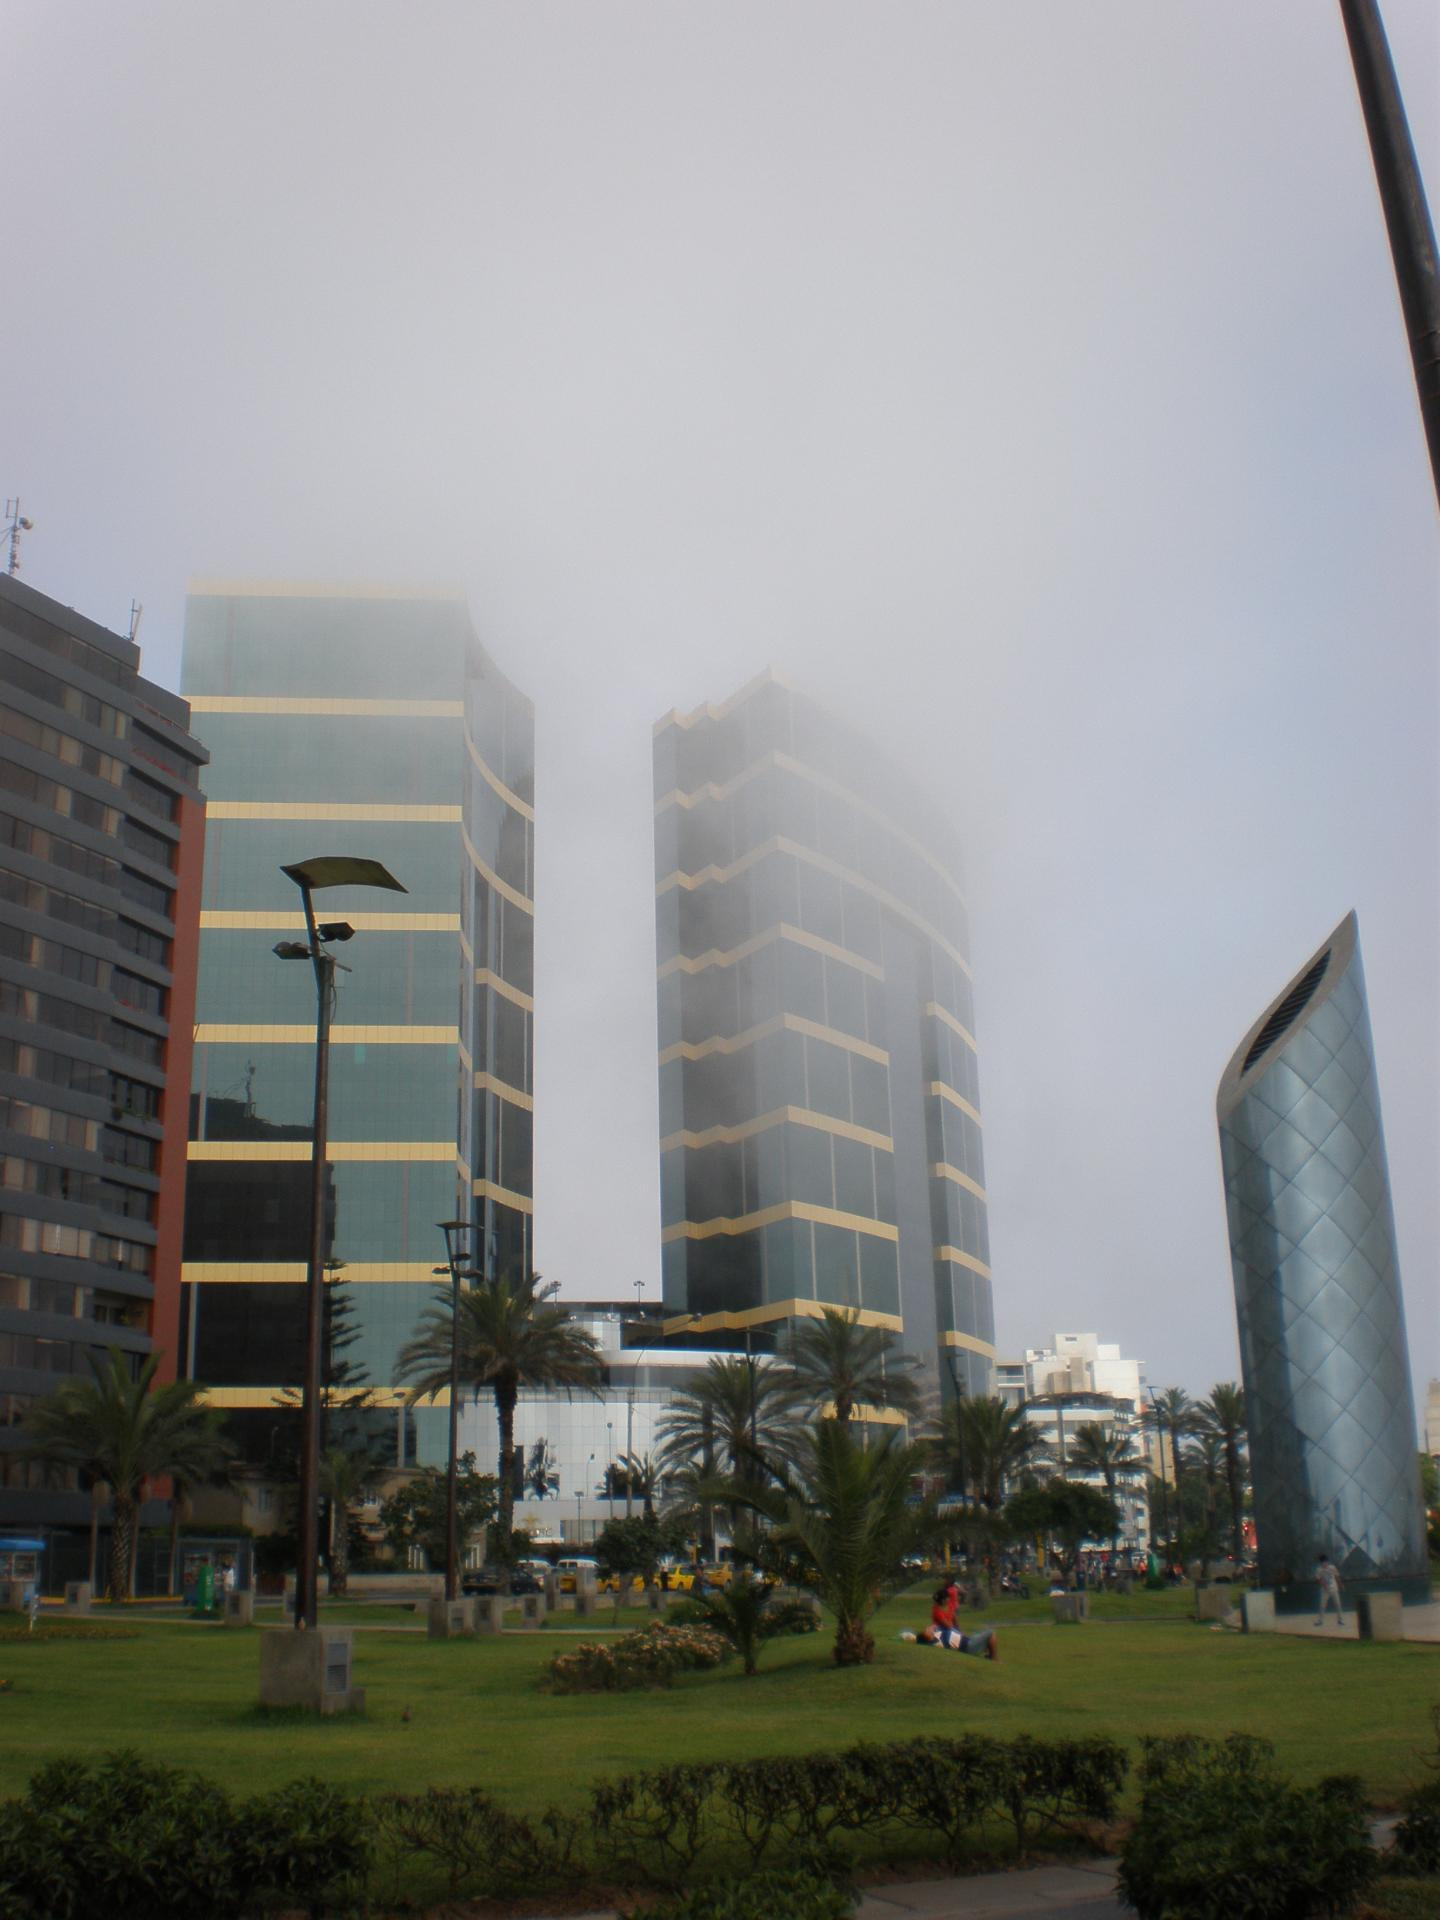 Miraflores quartier d'affaires